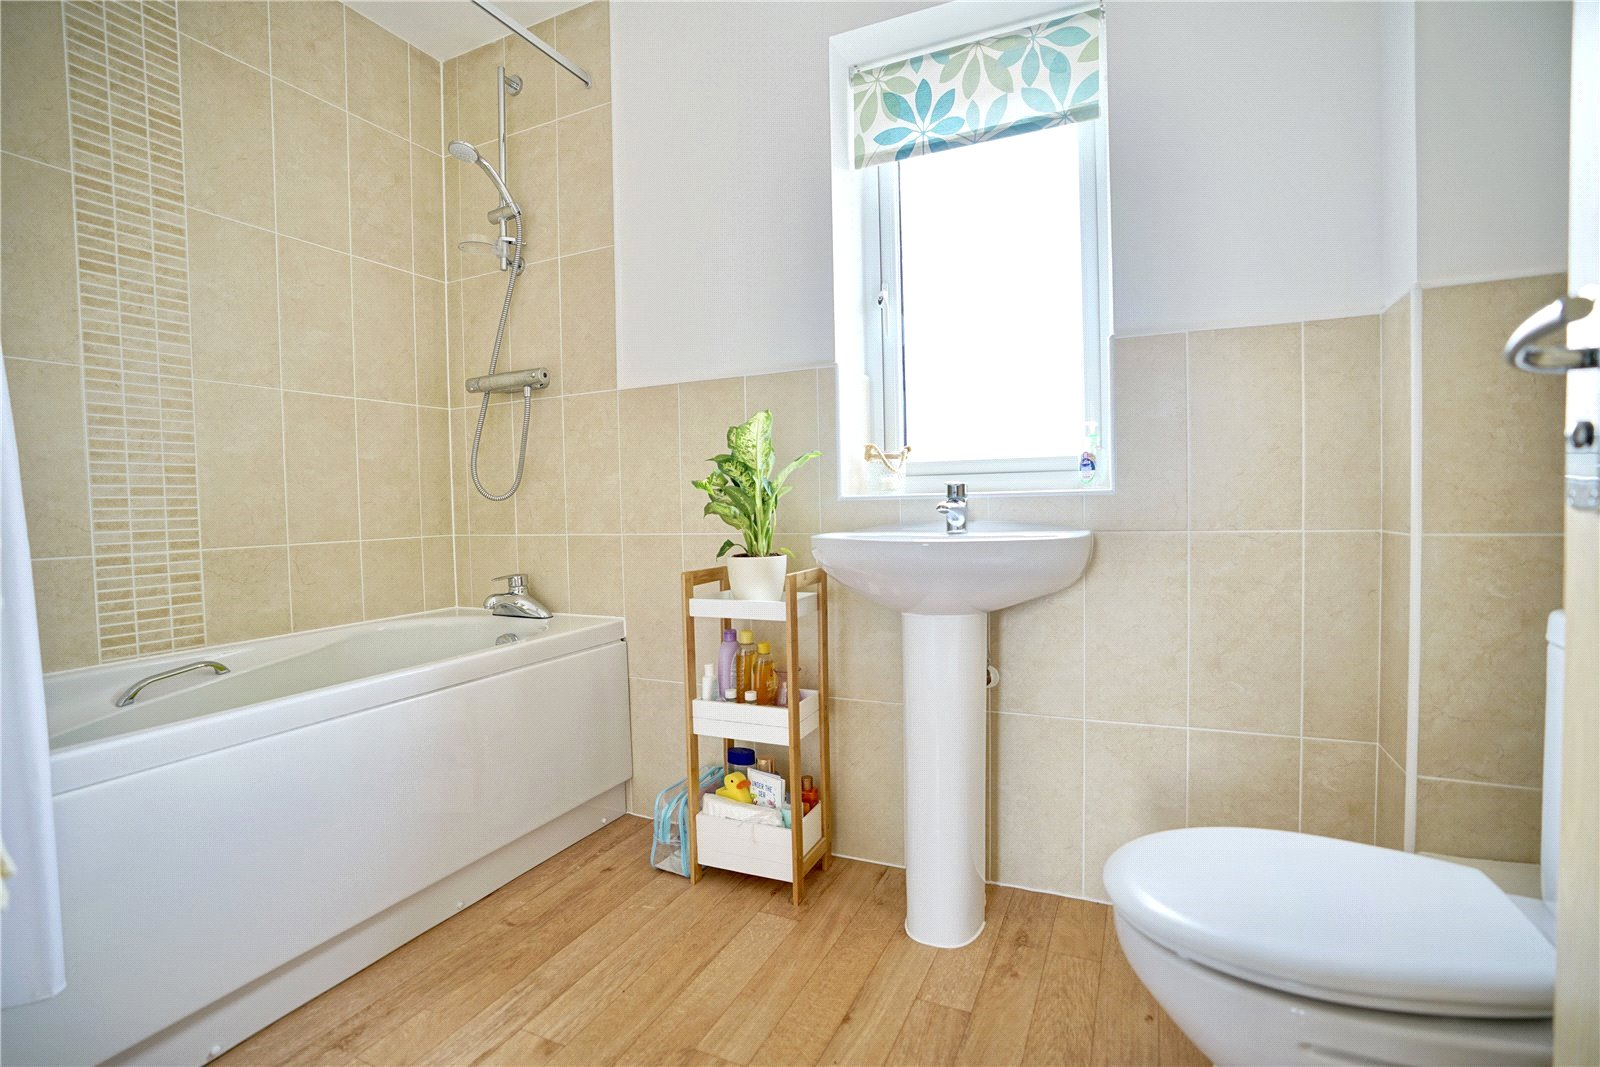 3 bed house for sale in St. Ives, PE27 5DL  - Property Image 10